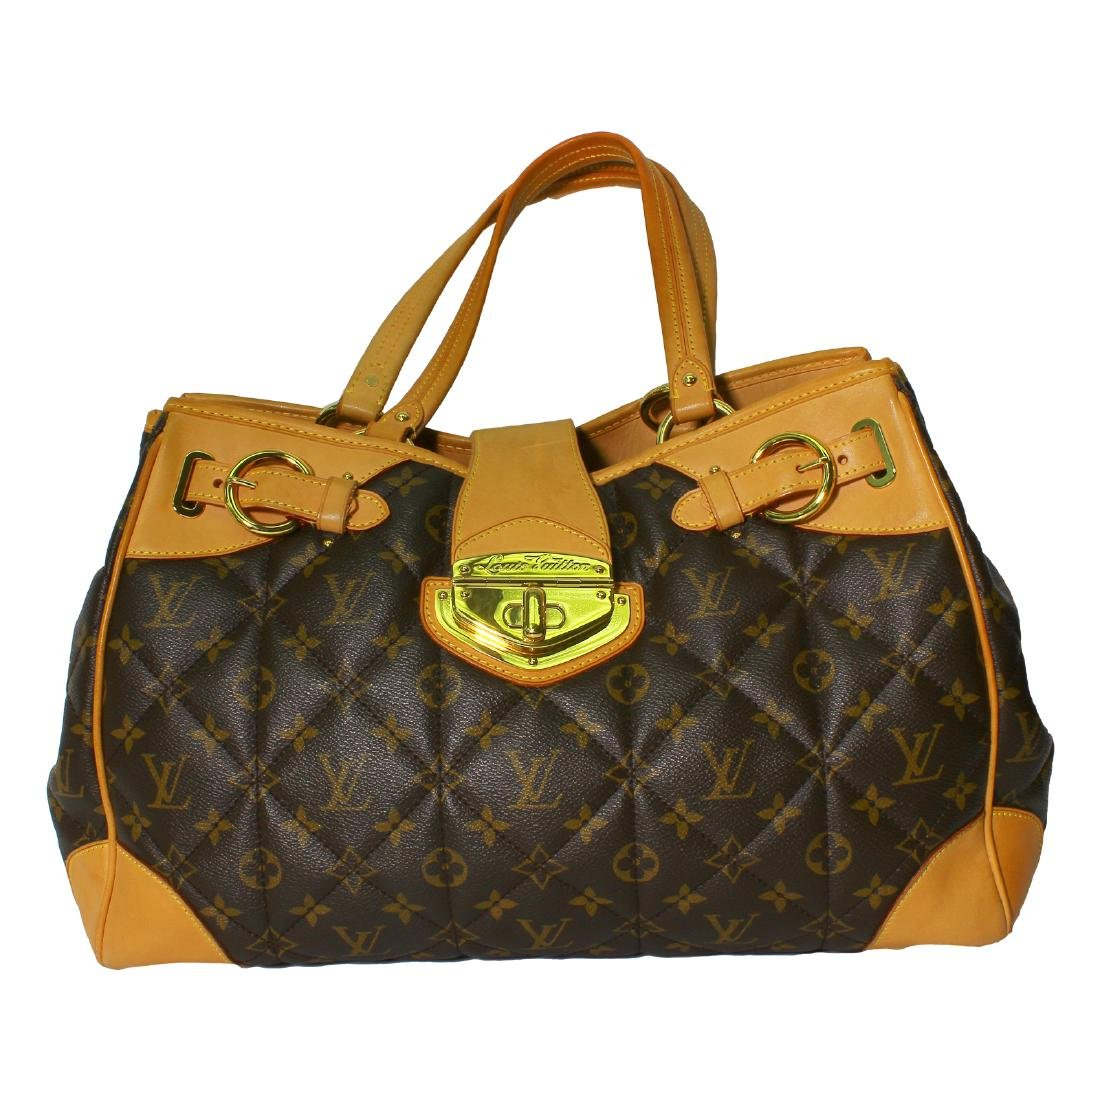 Louis Vuitton Monogram Canvas Etoile Bag, Brown & Tan